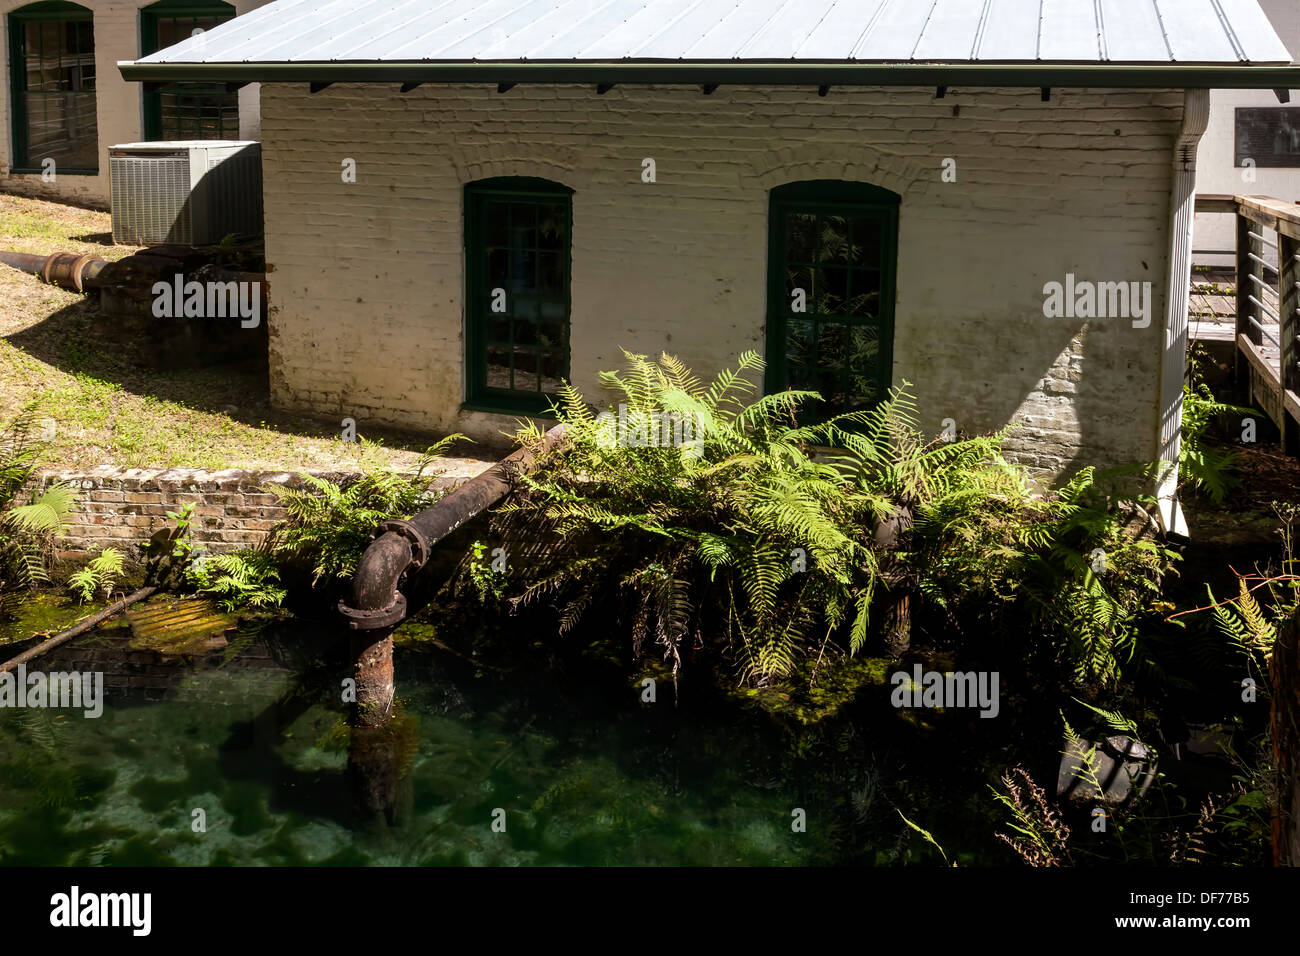 Artesian spring basin at the Boulware Springs Water Works,  the original Gainesville water plant, was first tapped in 1898. - Stock Image